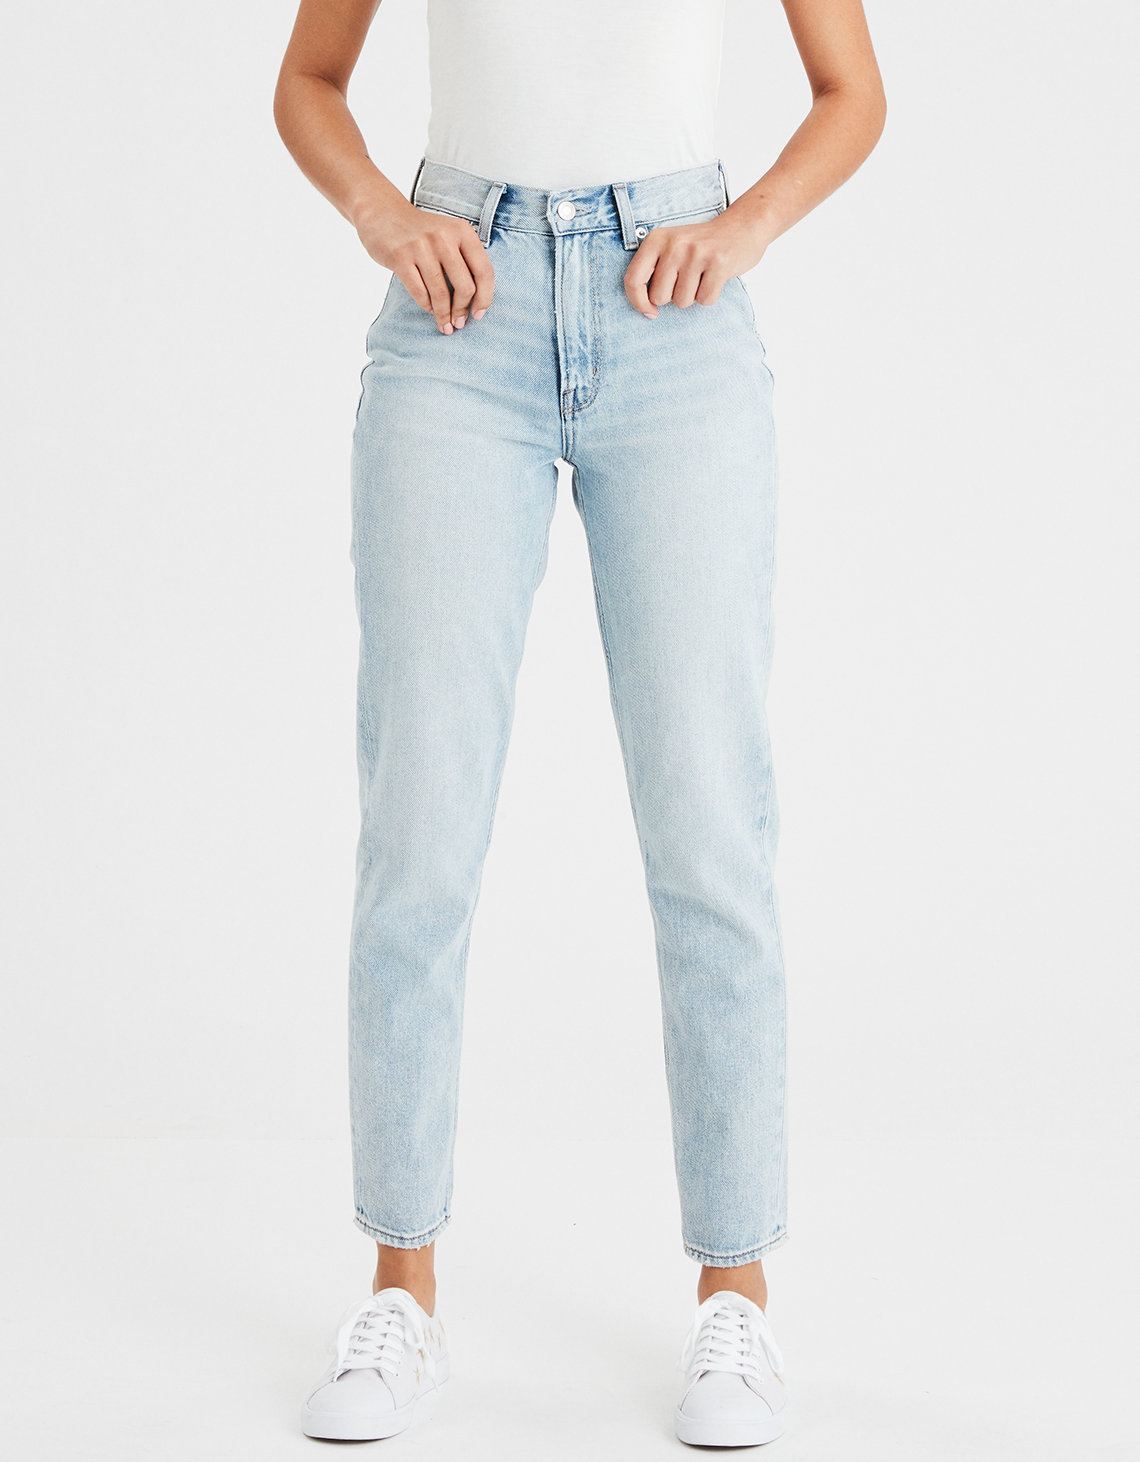 american eagle mom jean review